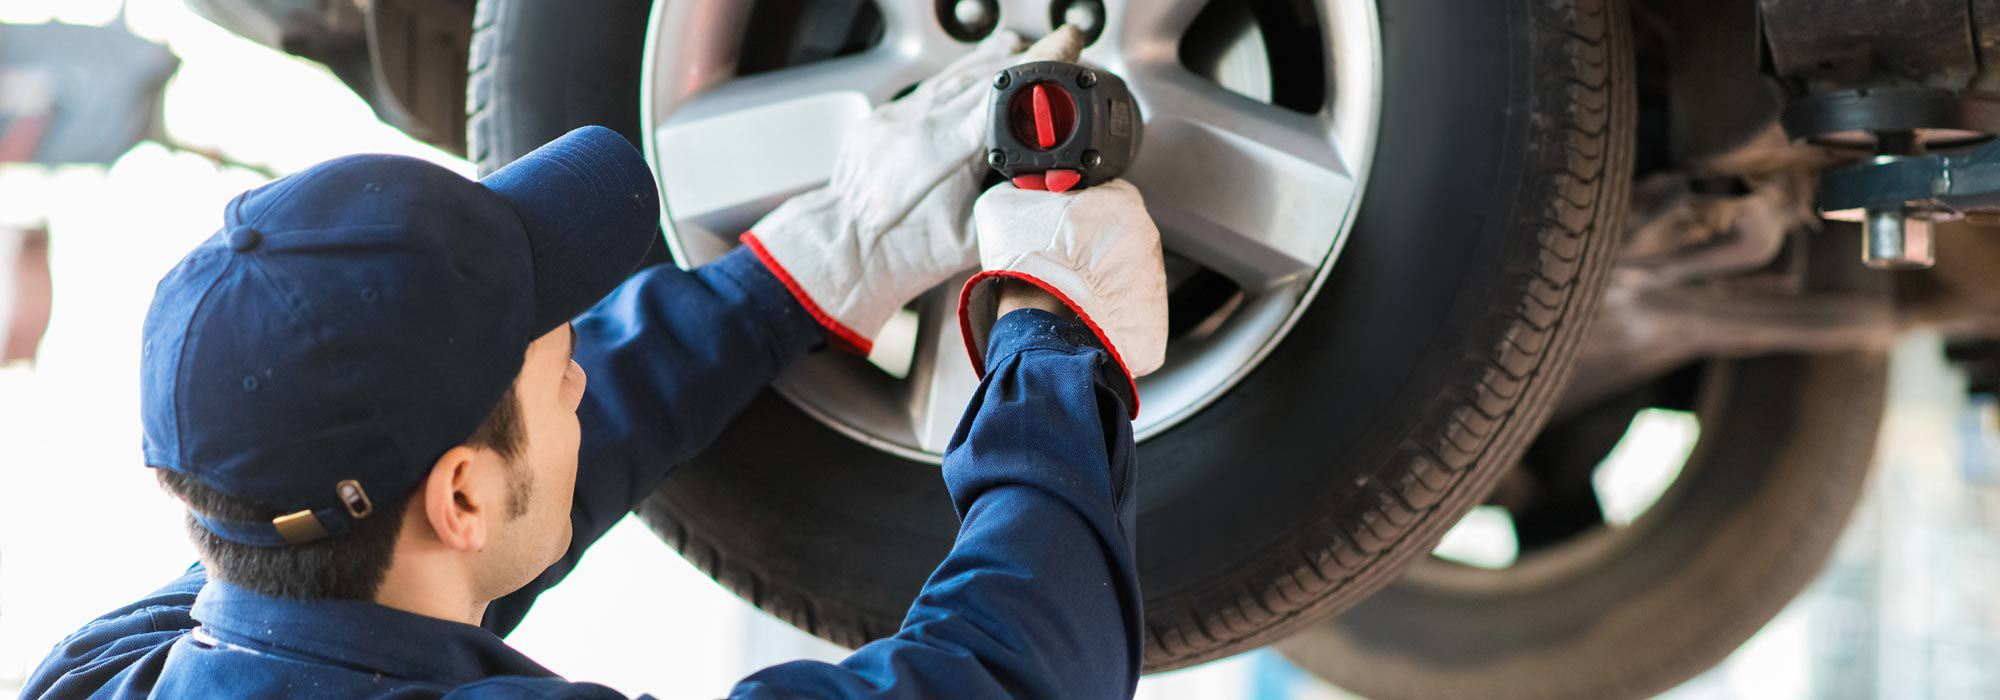 Automobile servicing in Lorain, OH